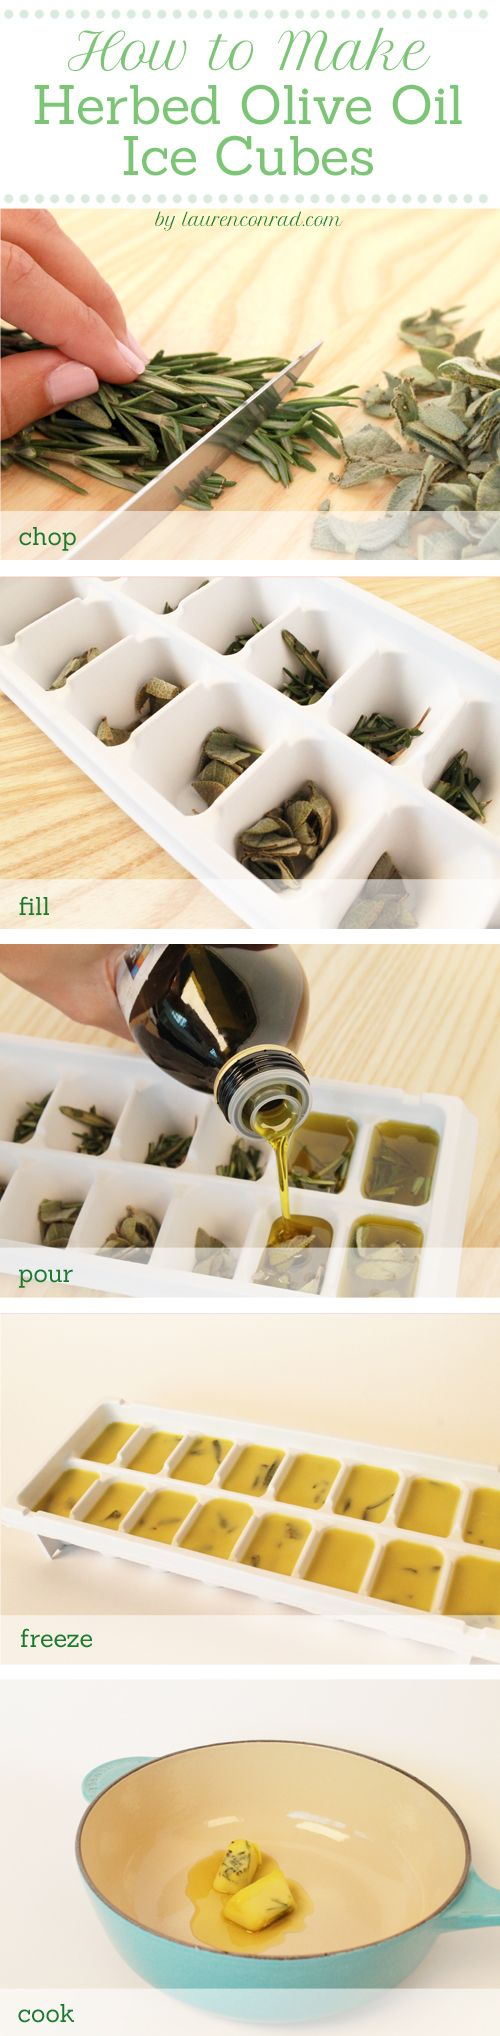 how to make herb-infused olive oil ice cubes